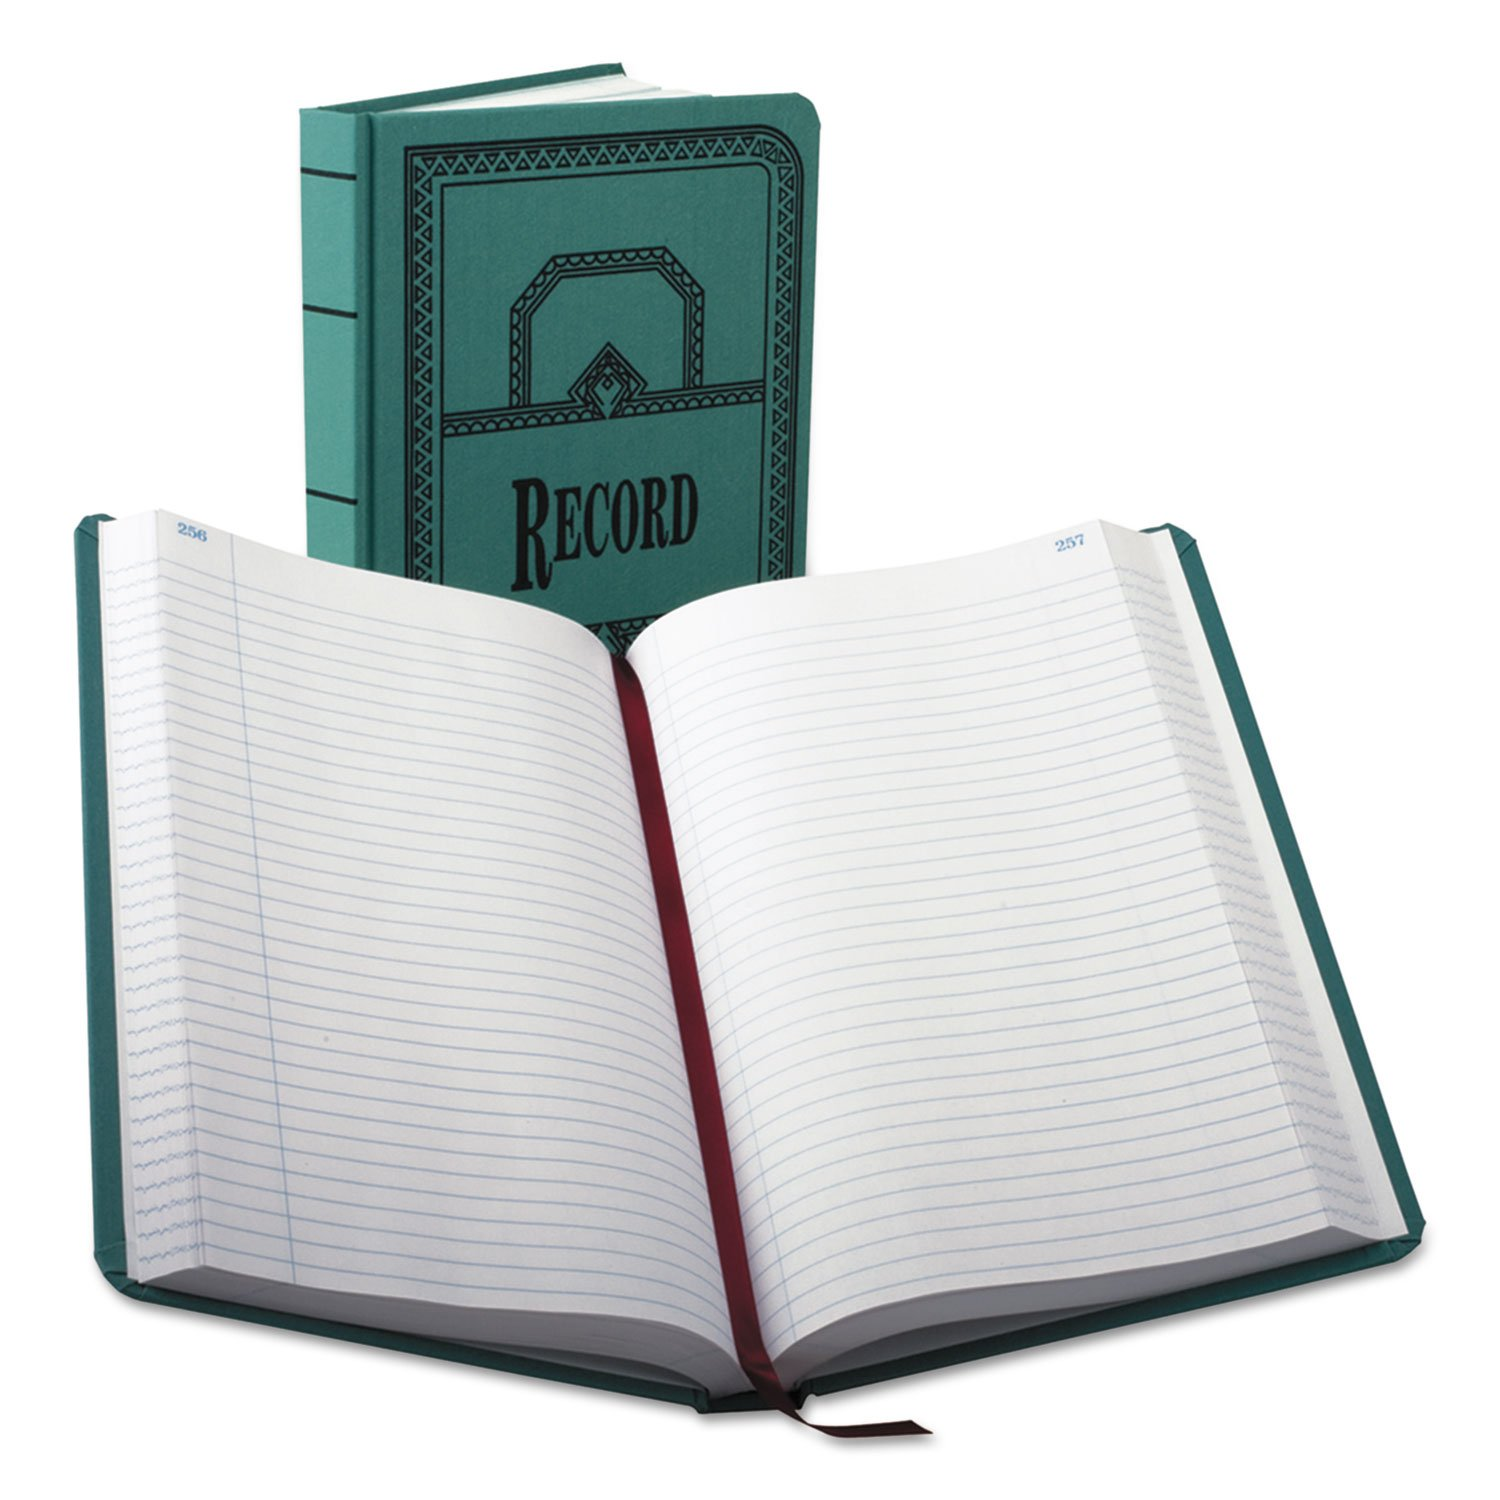 12-1//8-Inch x7-5//8-Inch Record-Ruled Blue Boorum /& Pease 66500R Account Book 500 Pages